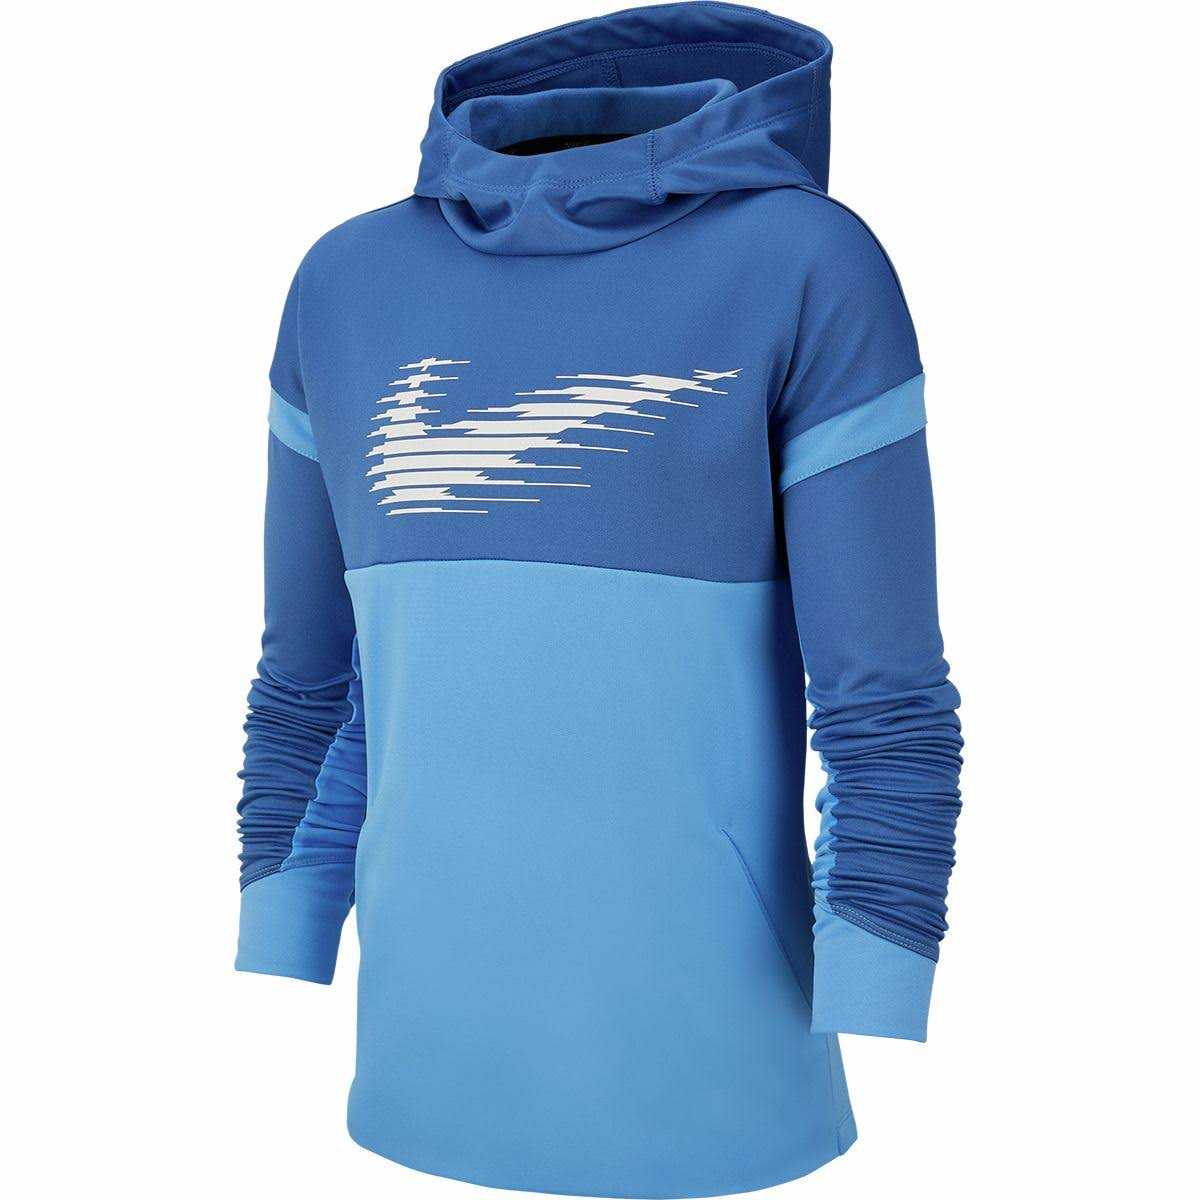 Nike Boys' Mountain Blue/University Blue Therma Pullover Hoodie - L